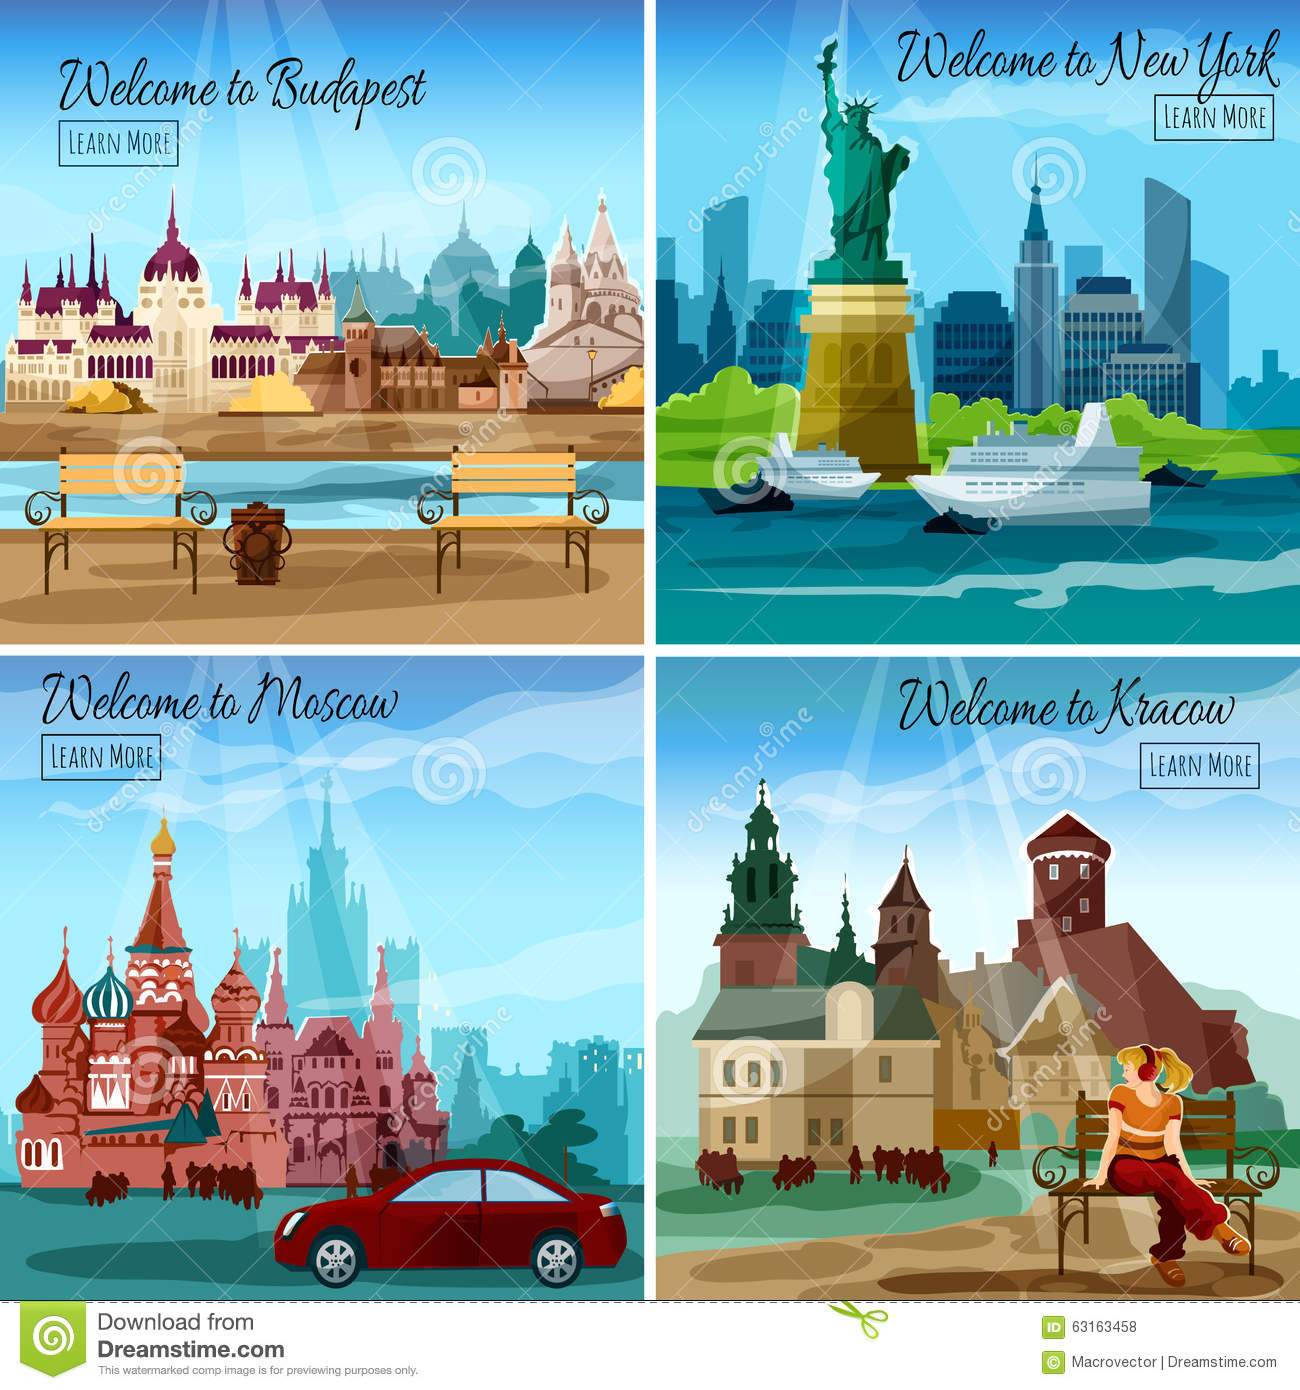 Famous cities set vector illustration for Famous cities in new york